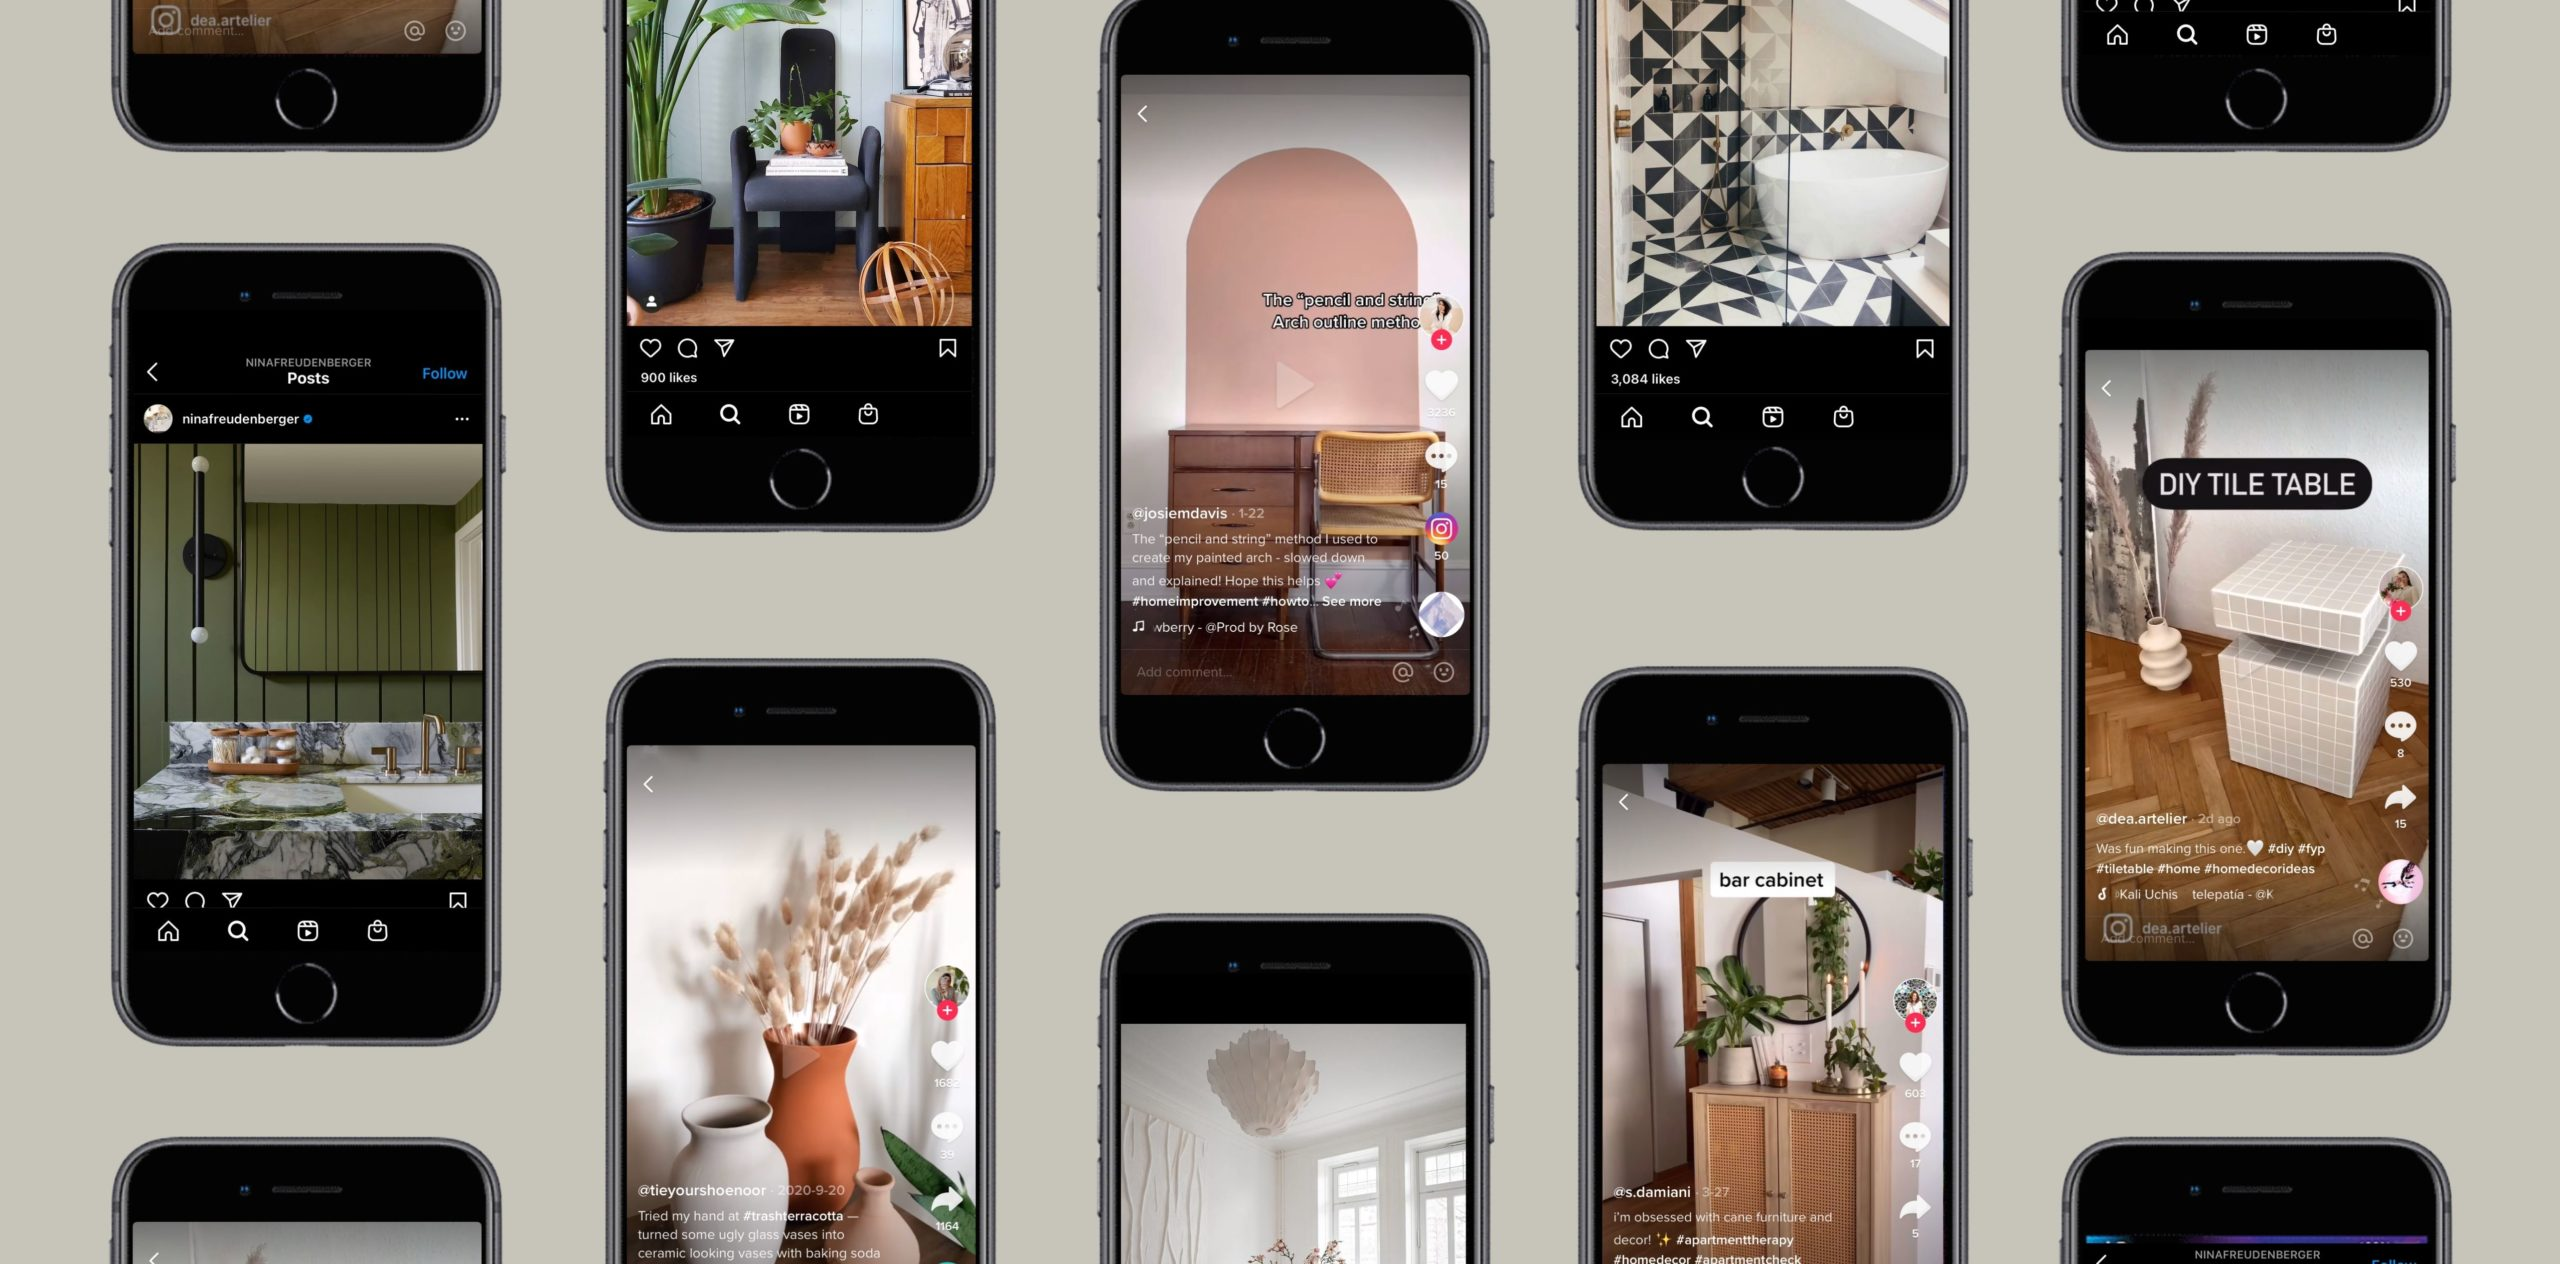 The Design Trends From Instagram & TikTok That You Should Know ...